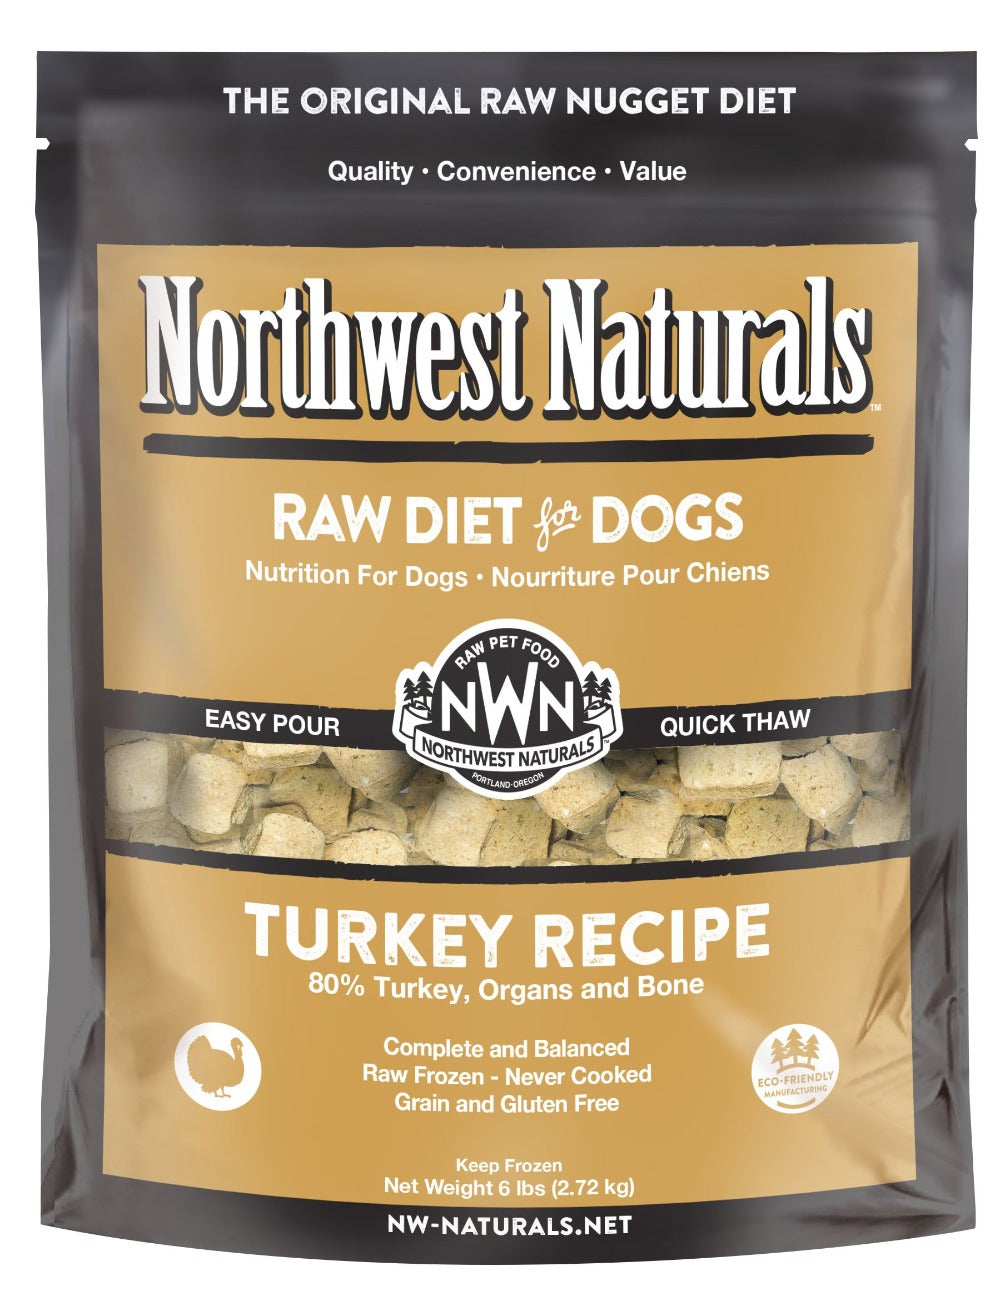 Northwest Naturals Raw Diets for Dogs - Nuggets